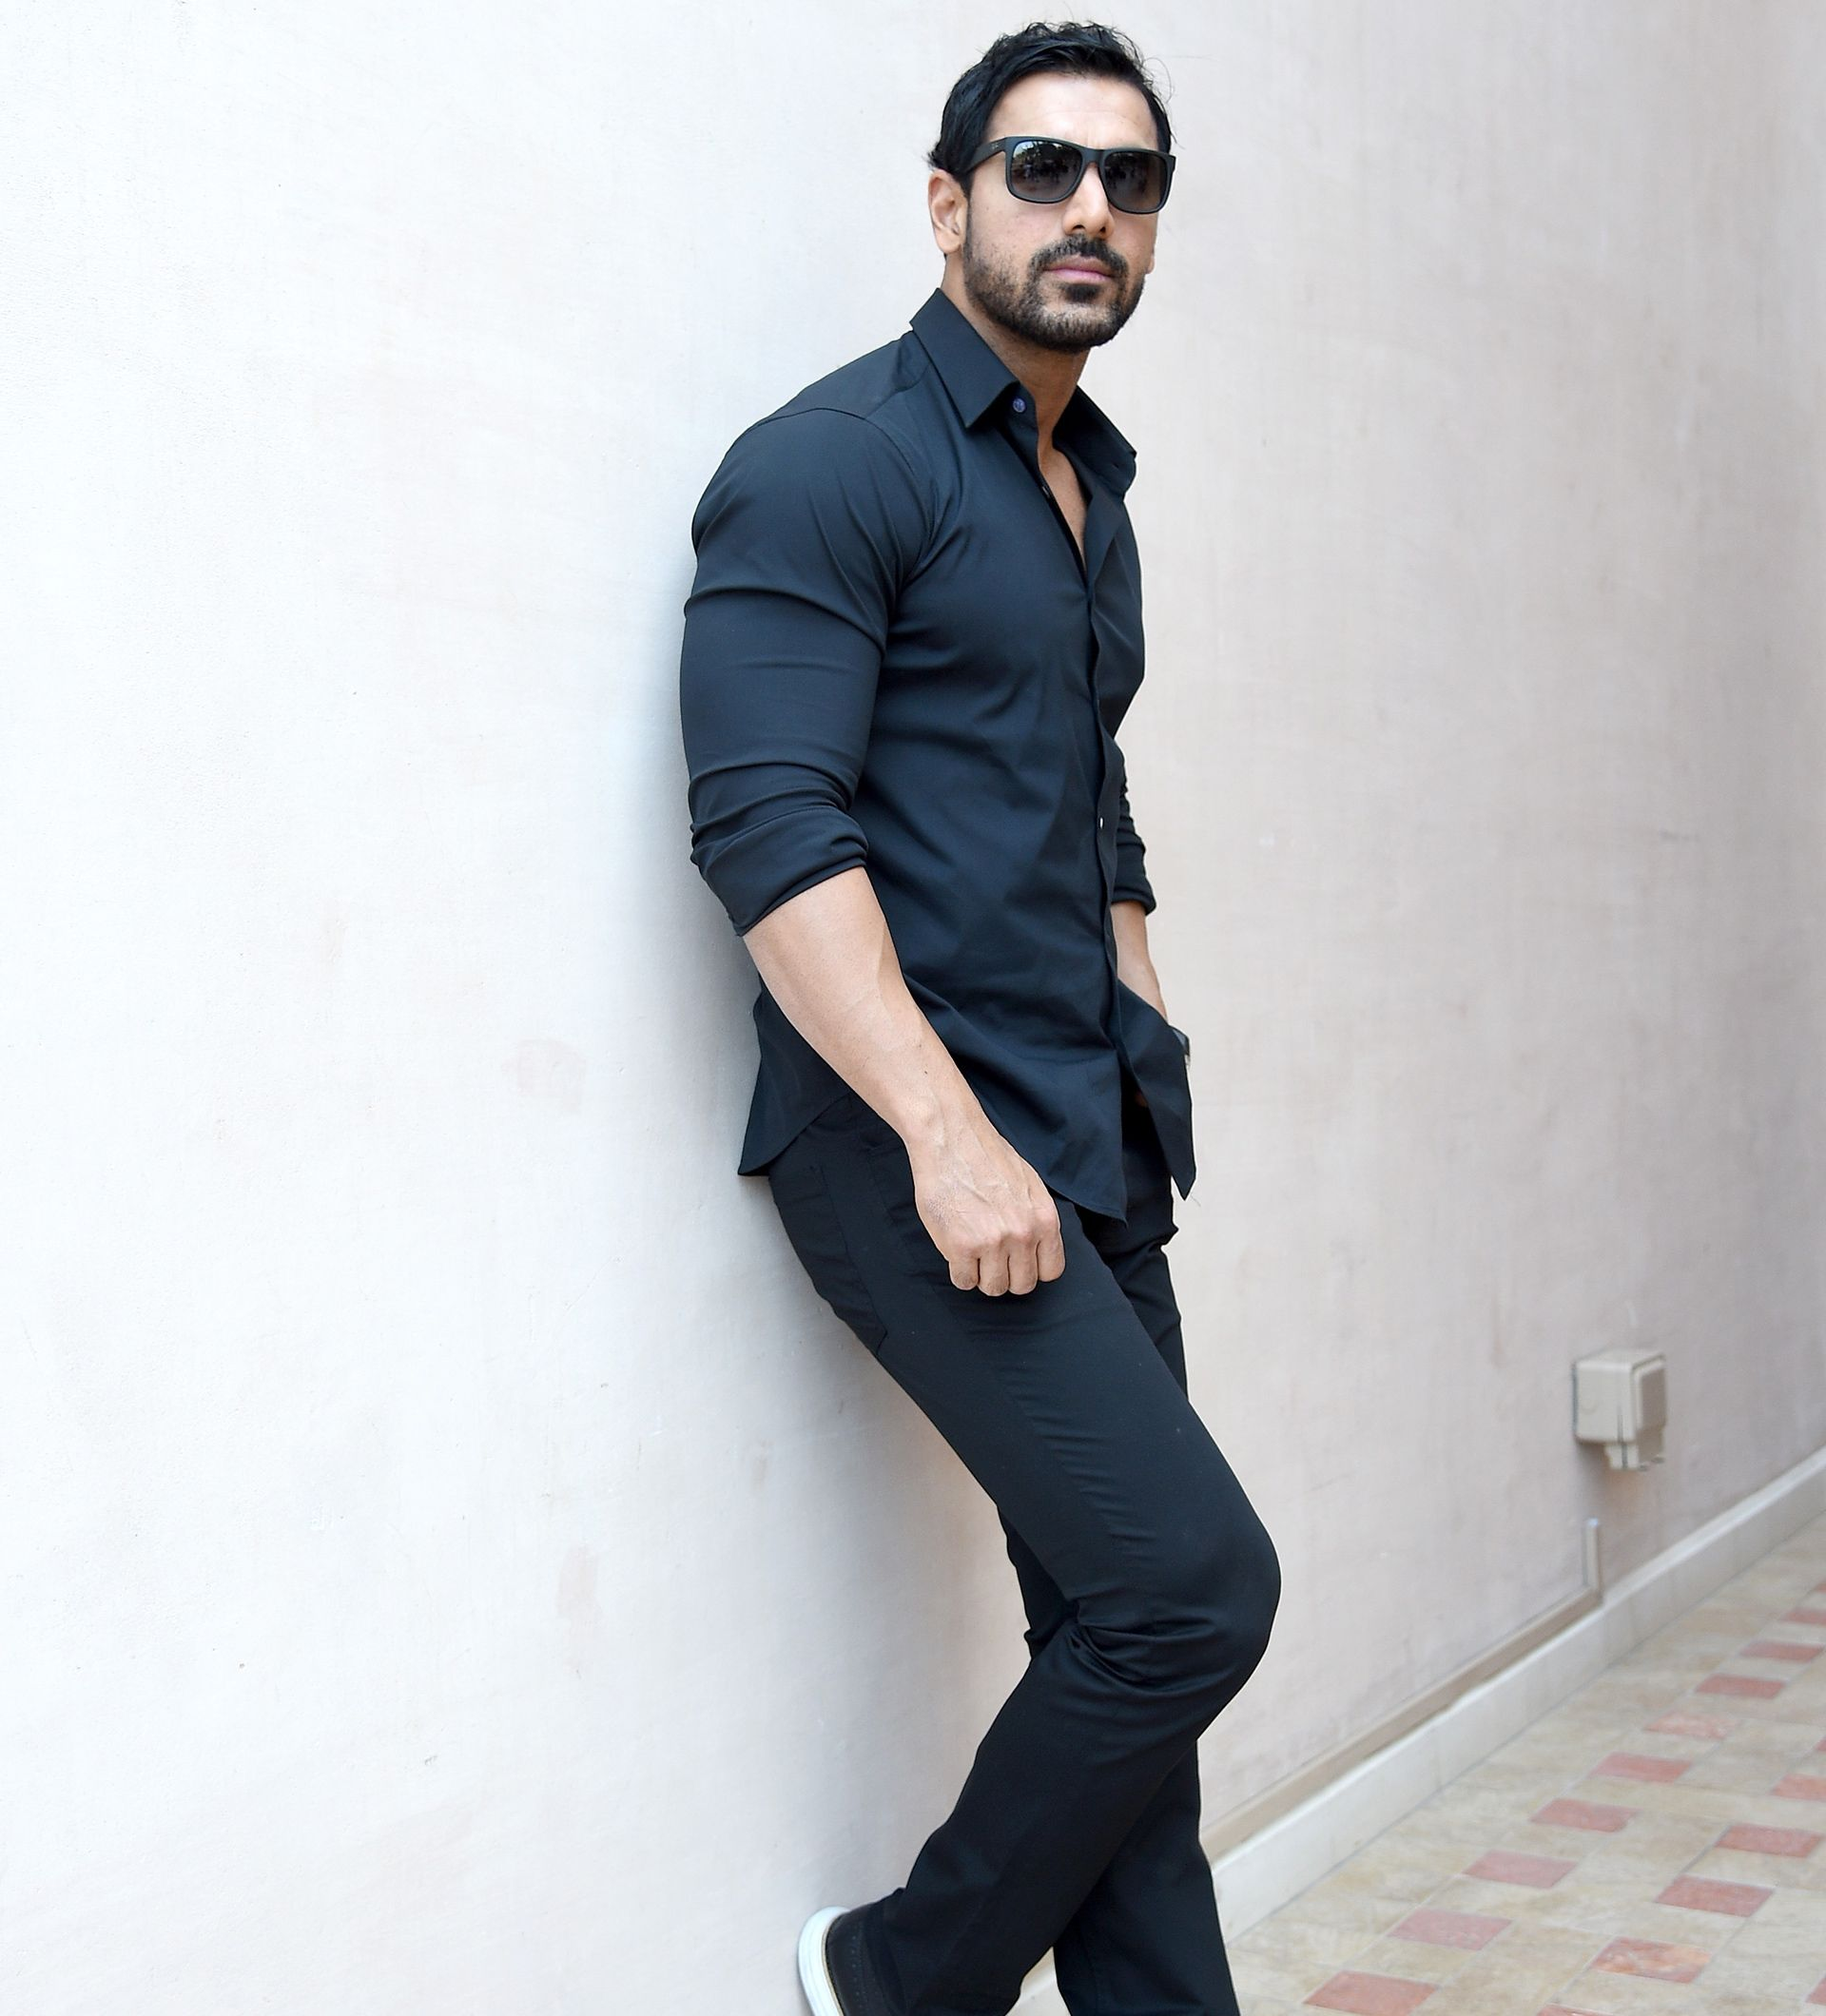 Wallpaper download john abraham - John Abraham Hd Wallpapers Free Download Latest John Abraham Hd Wallpapers For Computer Mobile Iphone Ipad Or Any Gadget At Wallpaperscharlie